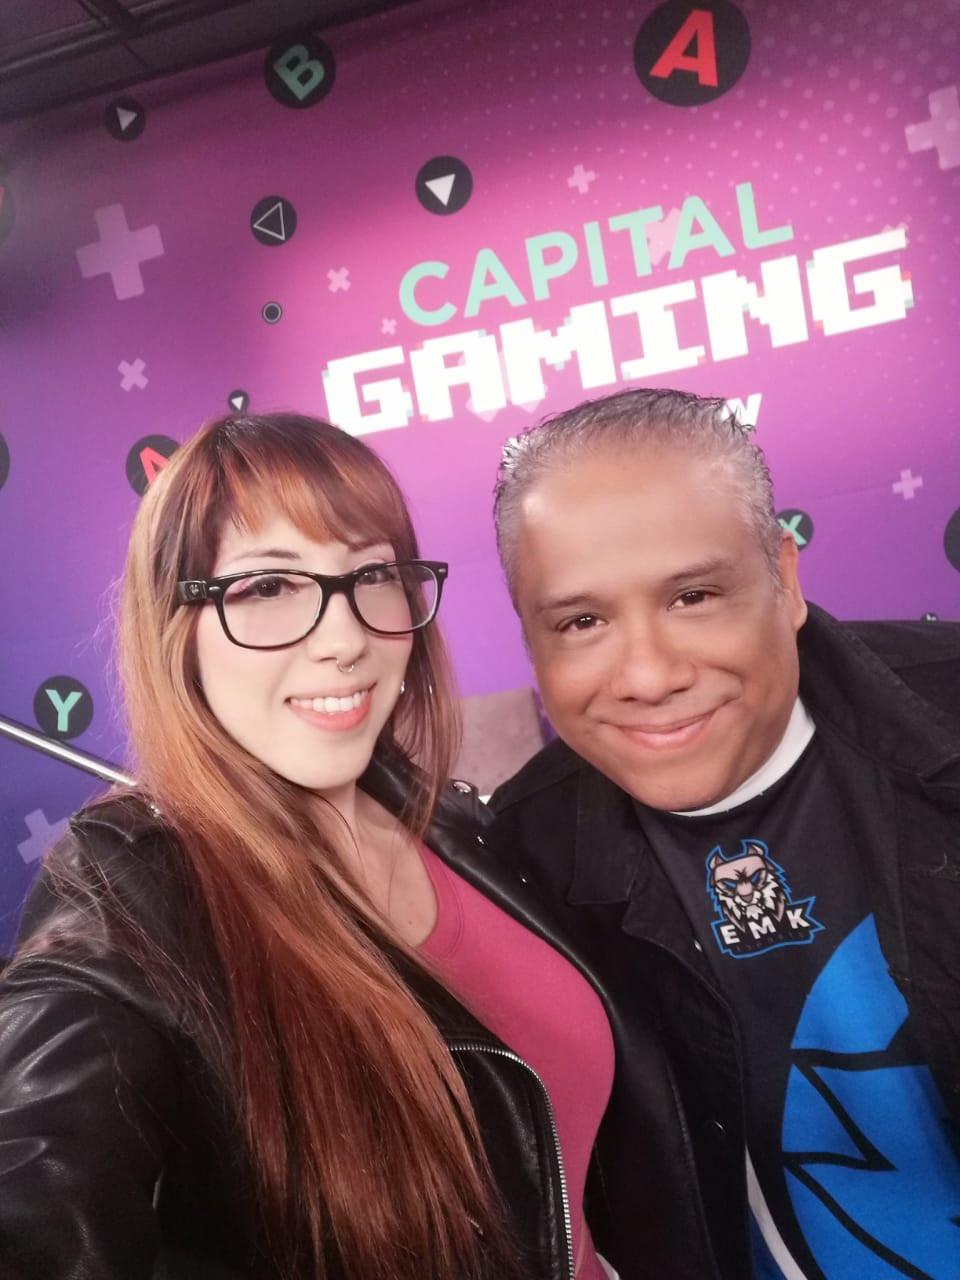 Entrevista en Capital Gaming